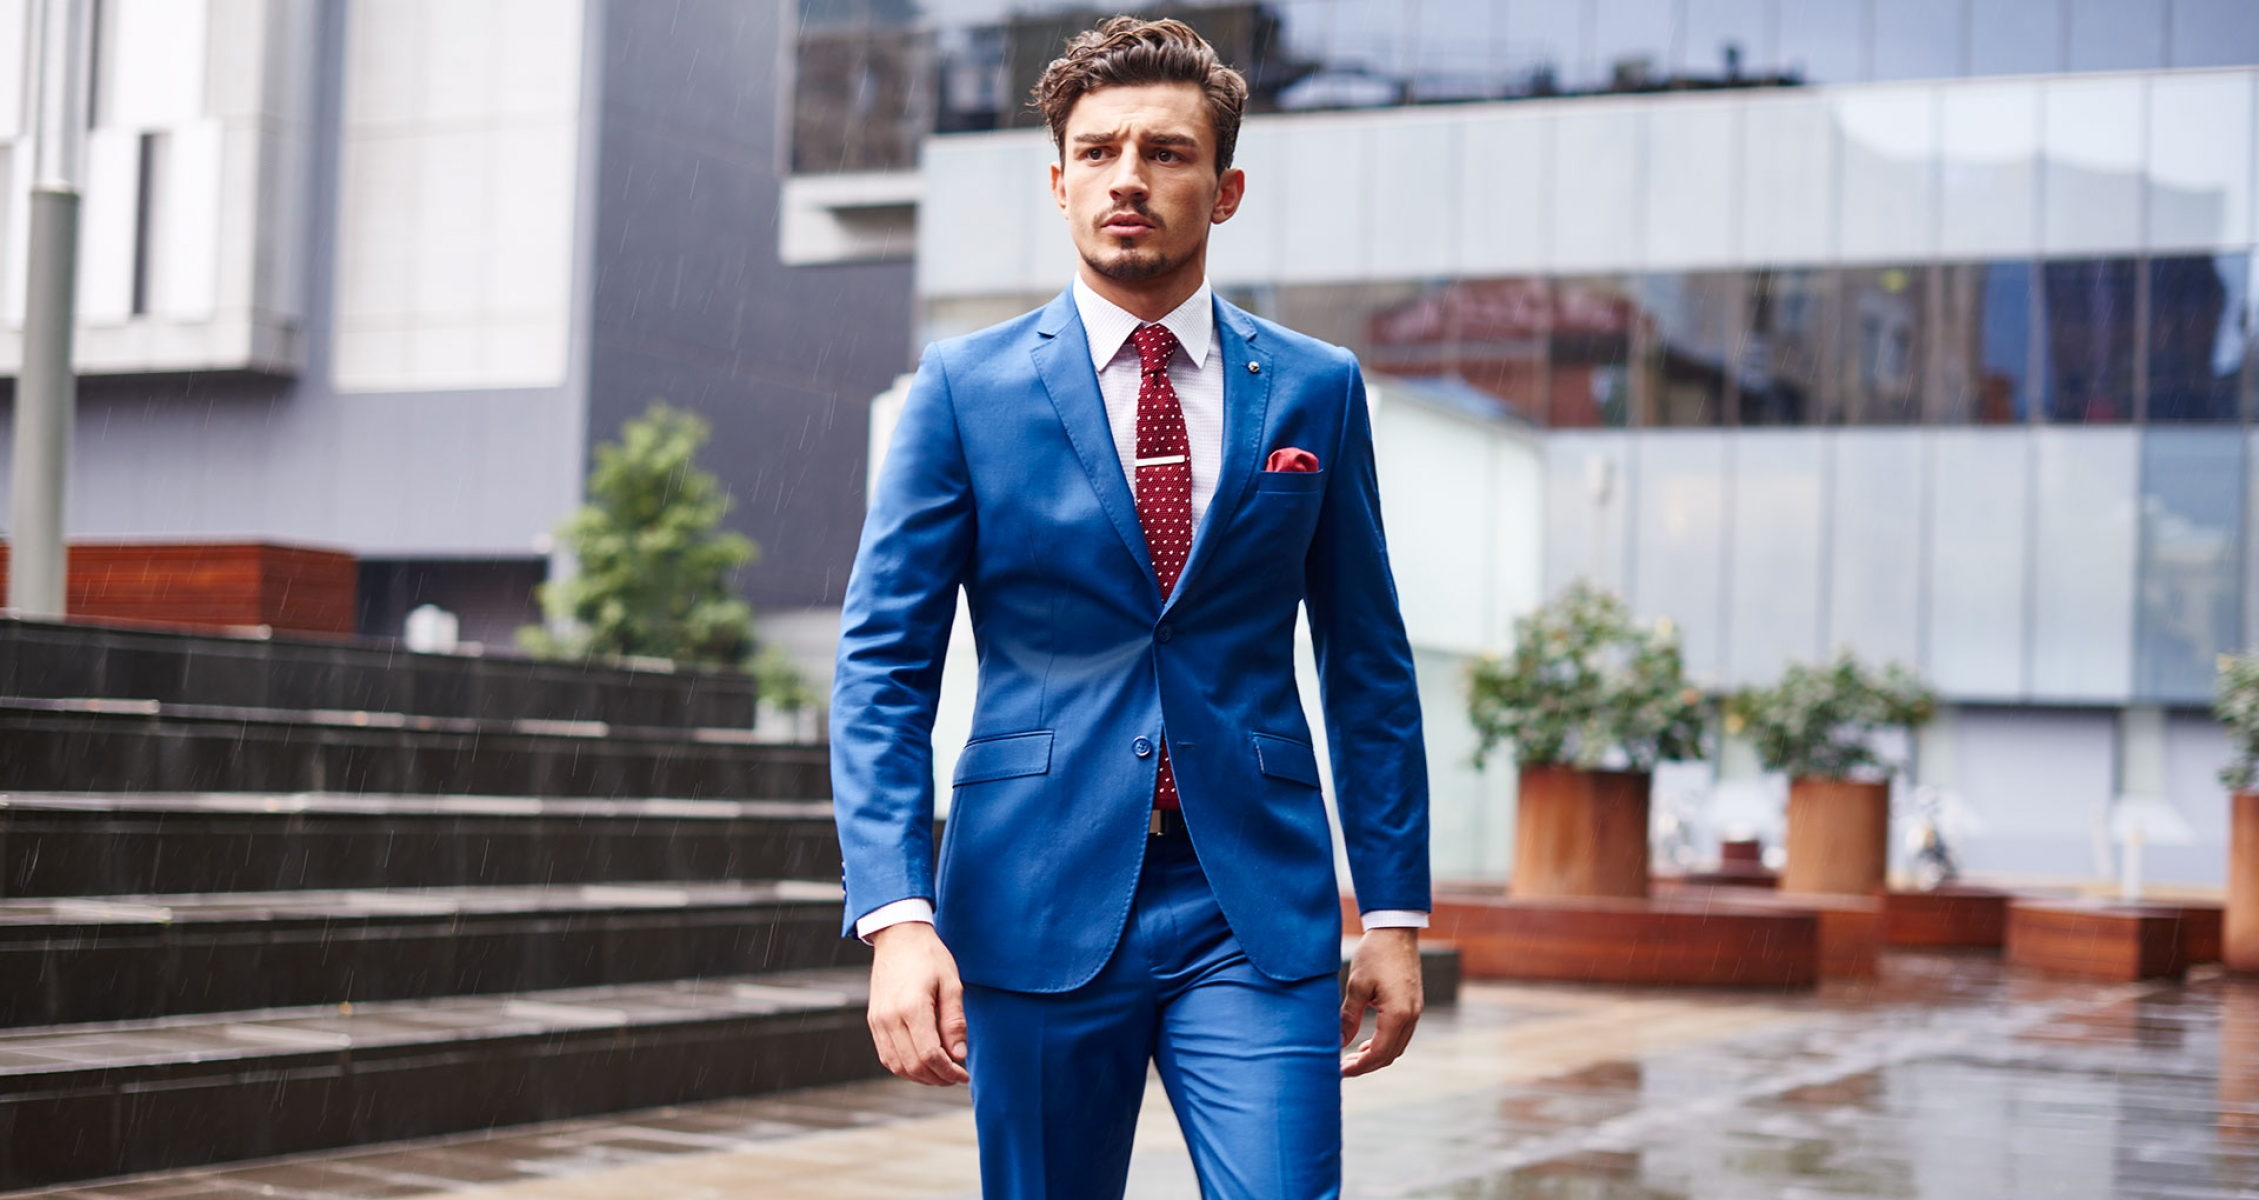 Famed Coral What Colors Go Picking Right Suit Colors To Go Navy Blue Shoes Your Skin What Colors Go Navy Blue houzz-03 What Colors Go With Navy Blue